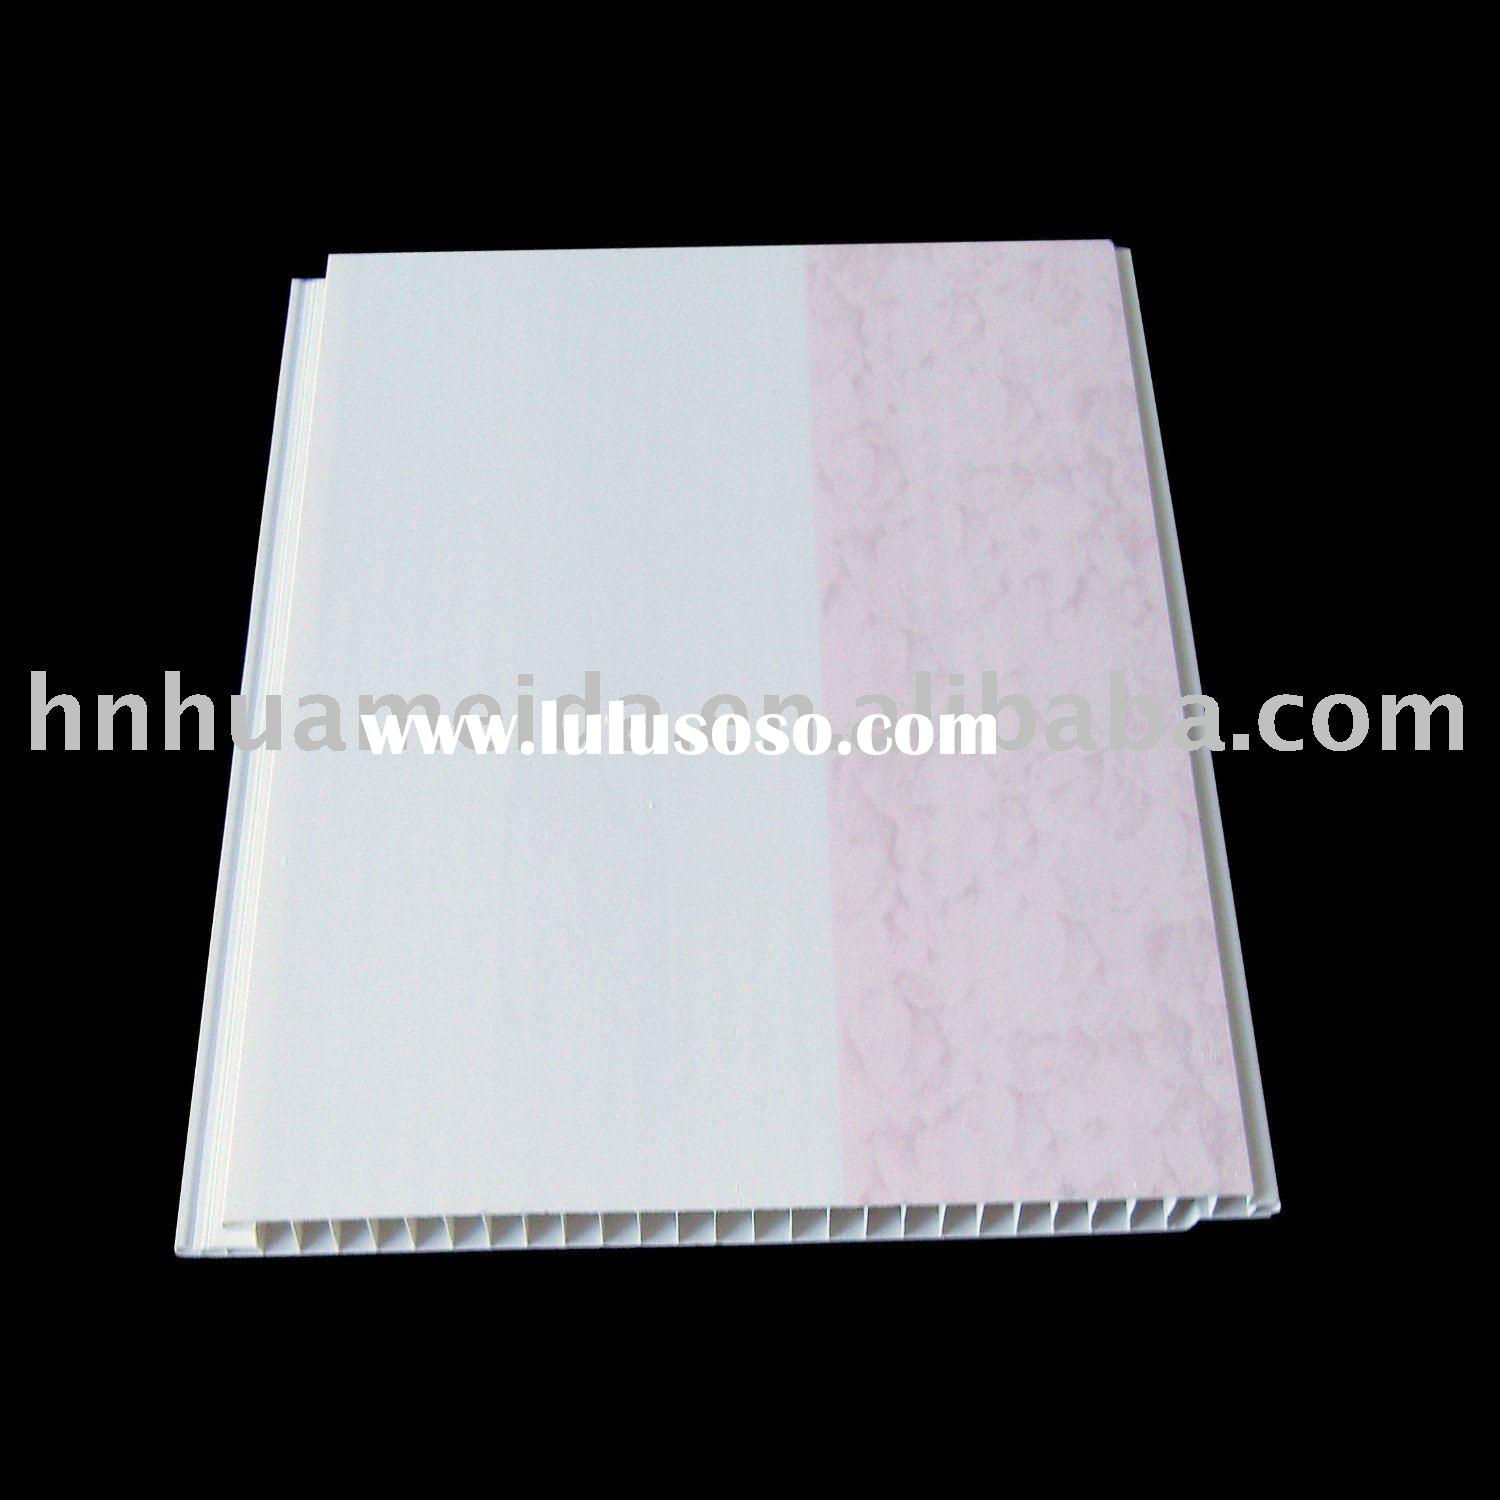 Bathroom cladding PVC Panel tile bathroom tile inspiring design ideas design a room inkiso